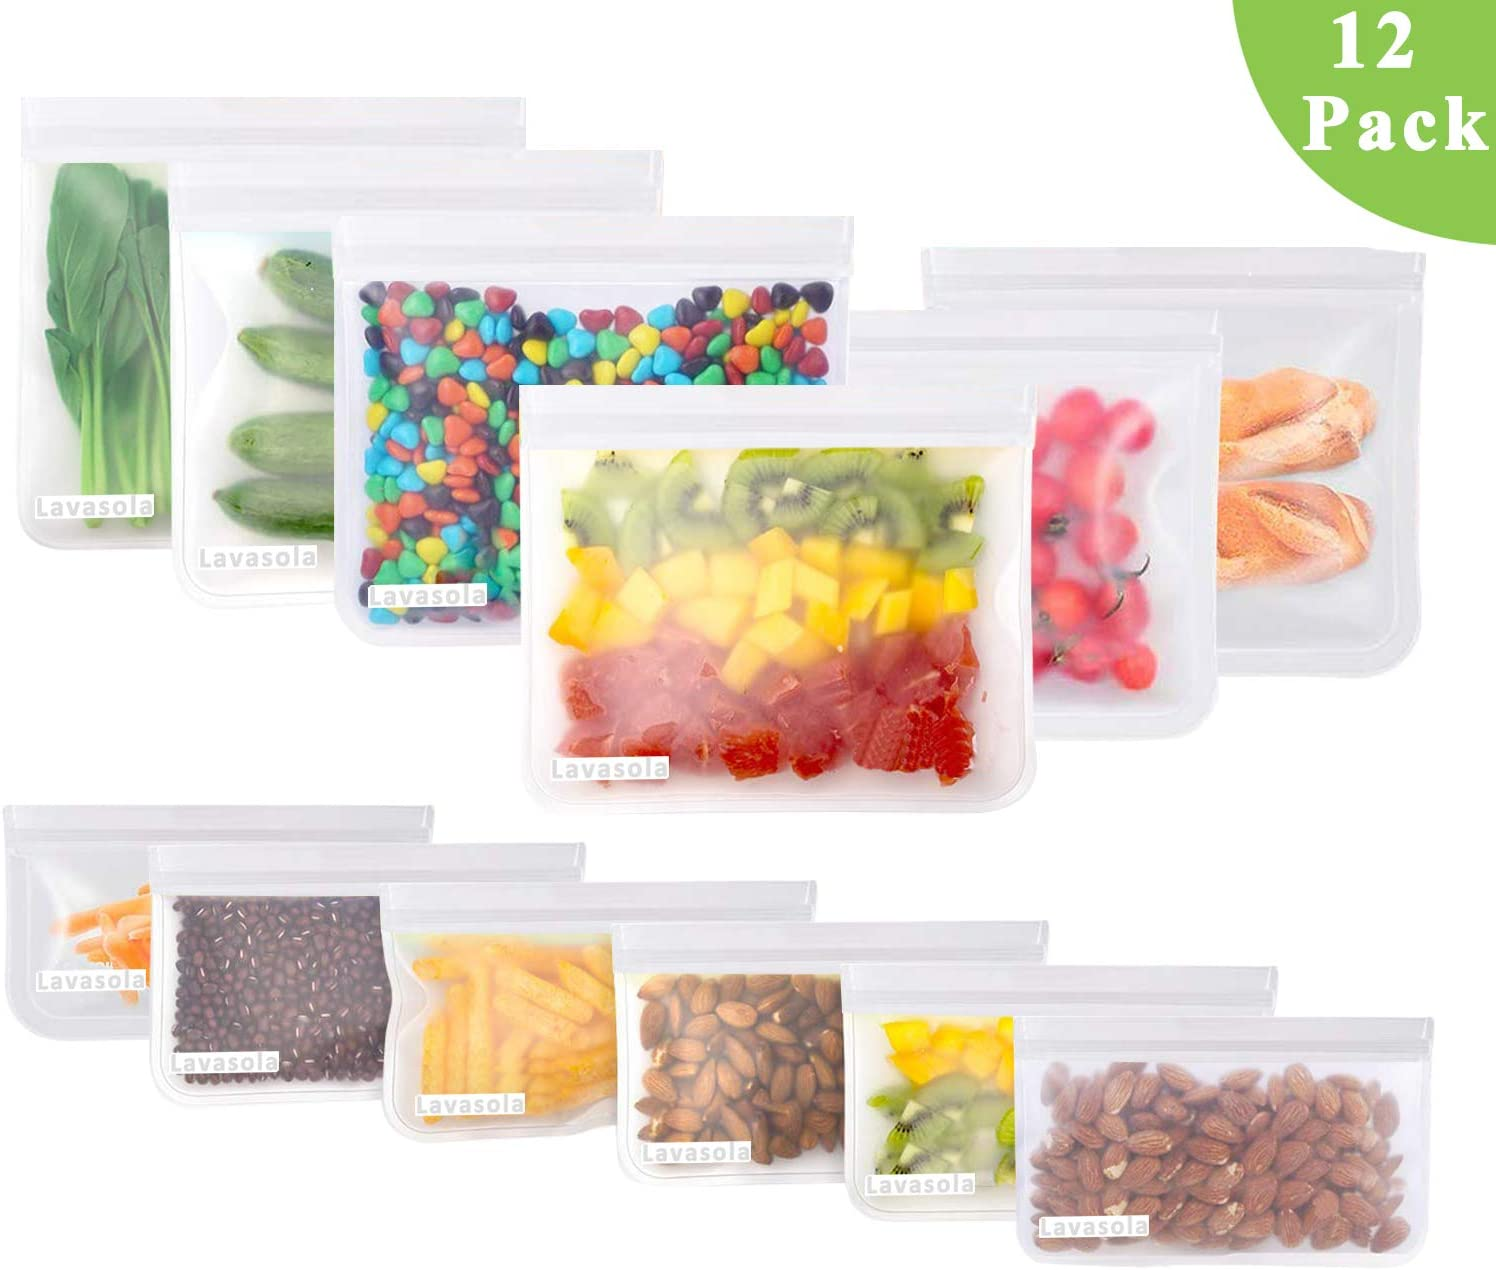 12 Pack Reusable Storage Bags - 6 Reusable Sandwich Bags & 6 Reusable Snack Bags,Motech FDA Grade Freezer Ziplock Bags, Extra Thick Leakproof Lunch Bags for Food Storage Home Travel Organization